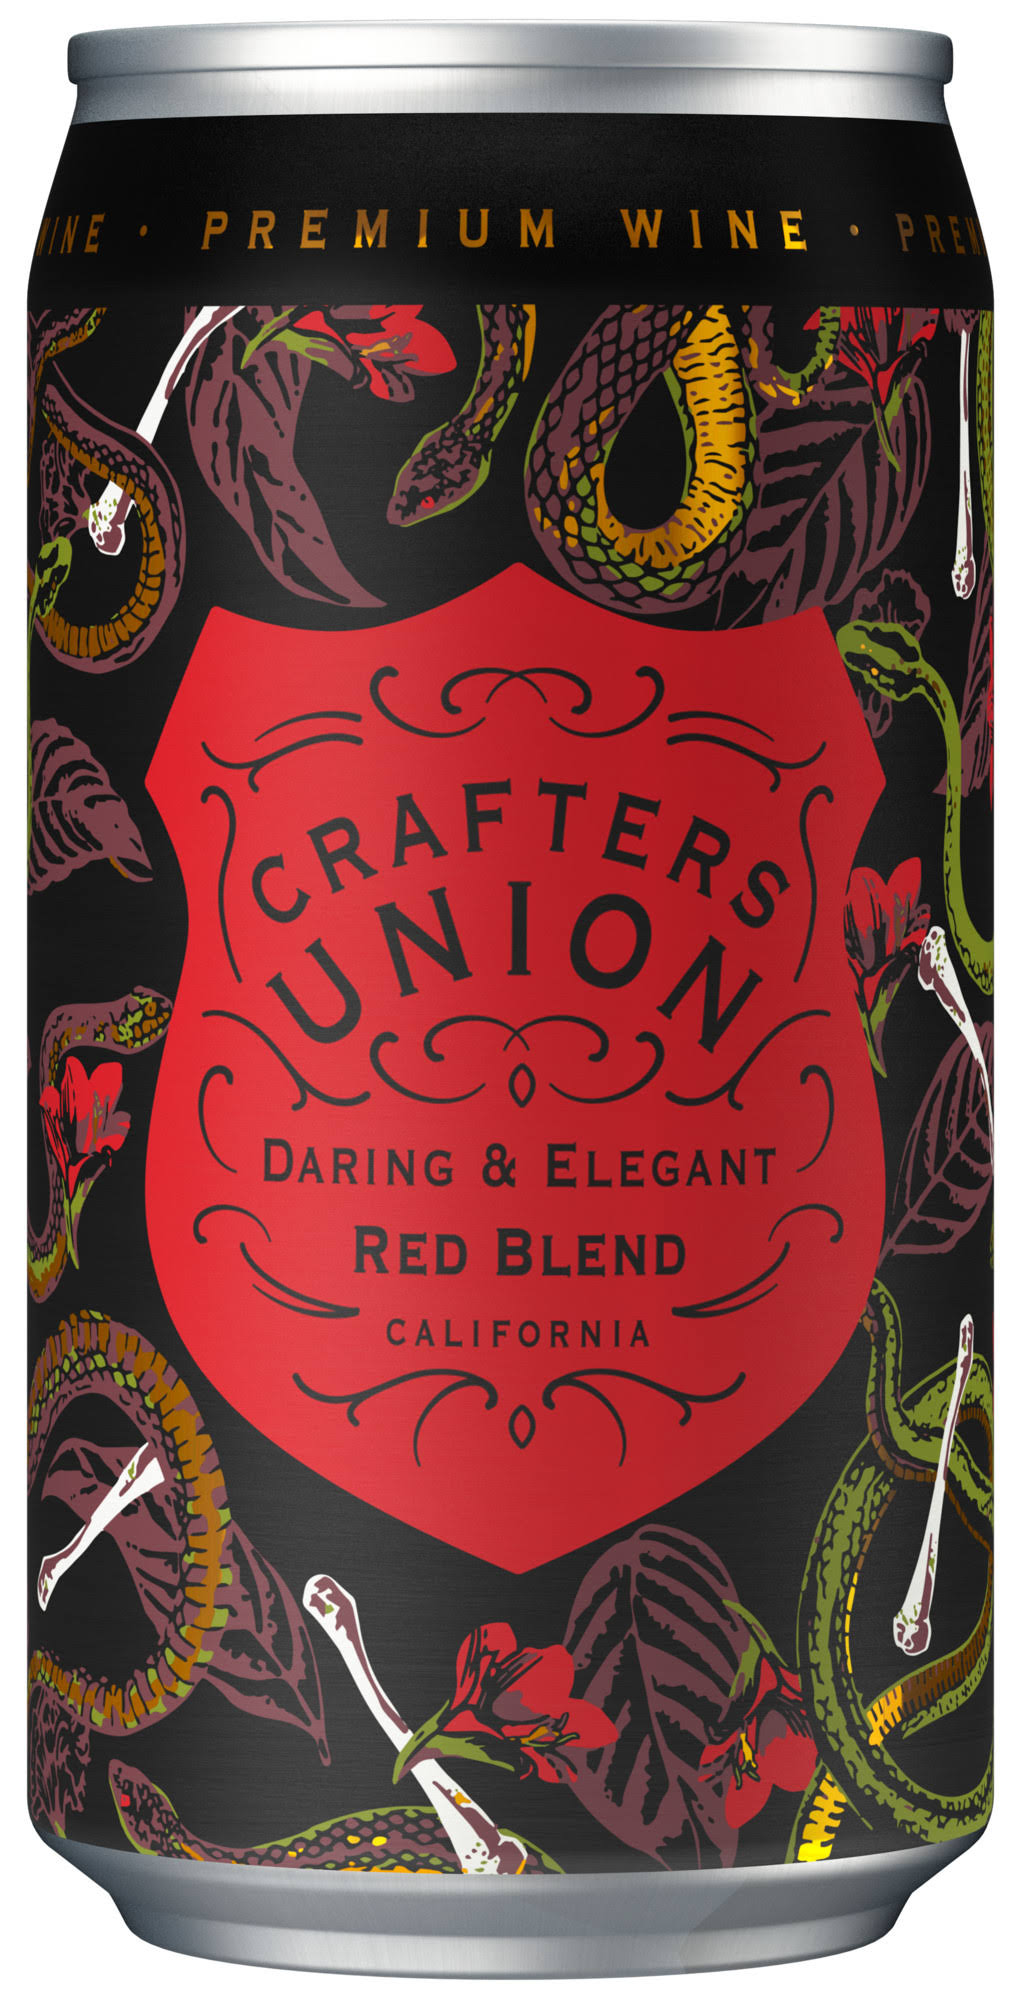 Crafters Union Red Blend, California - 375 ml